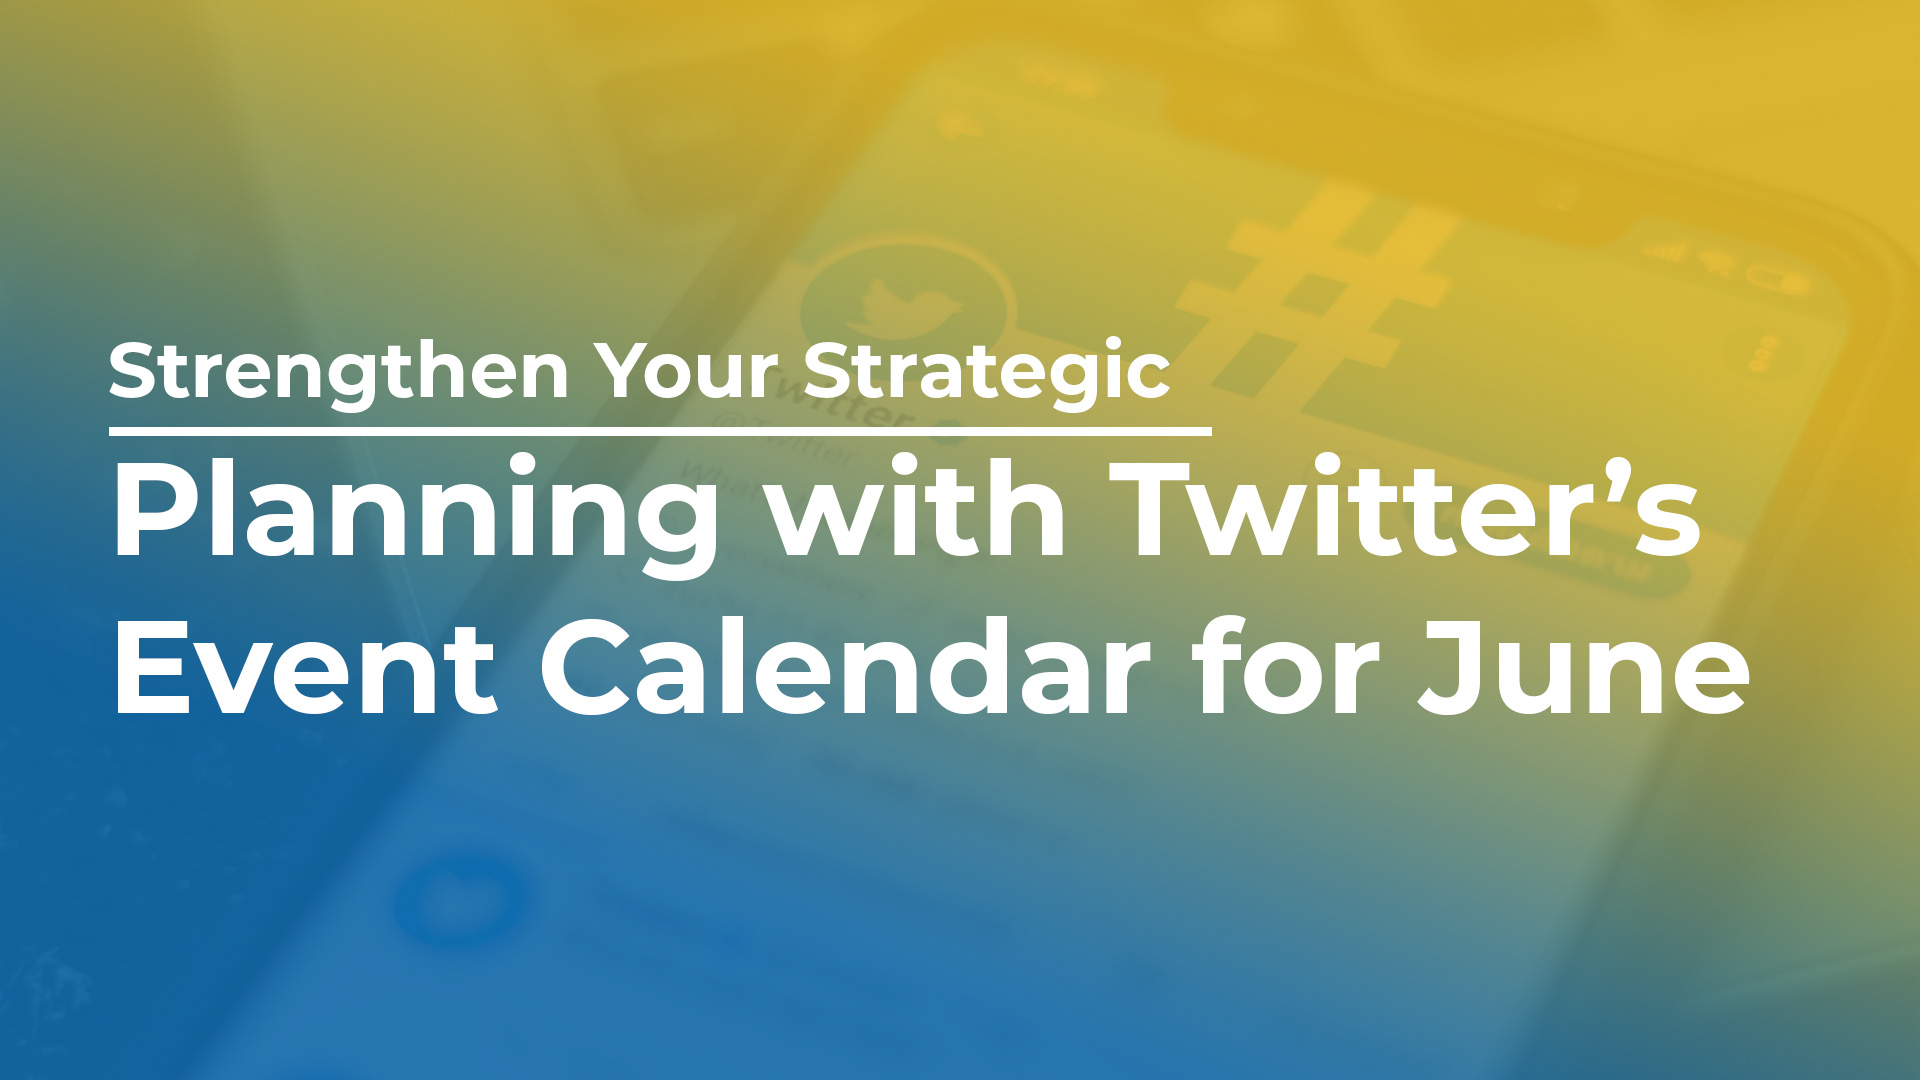 Strengthen Your Strategic Planning with Twitter's Event Calendar for June